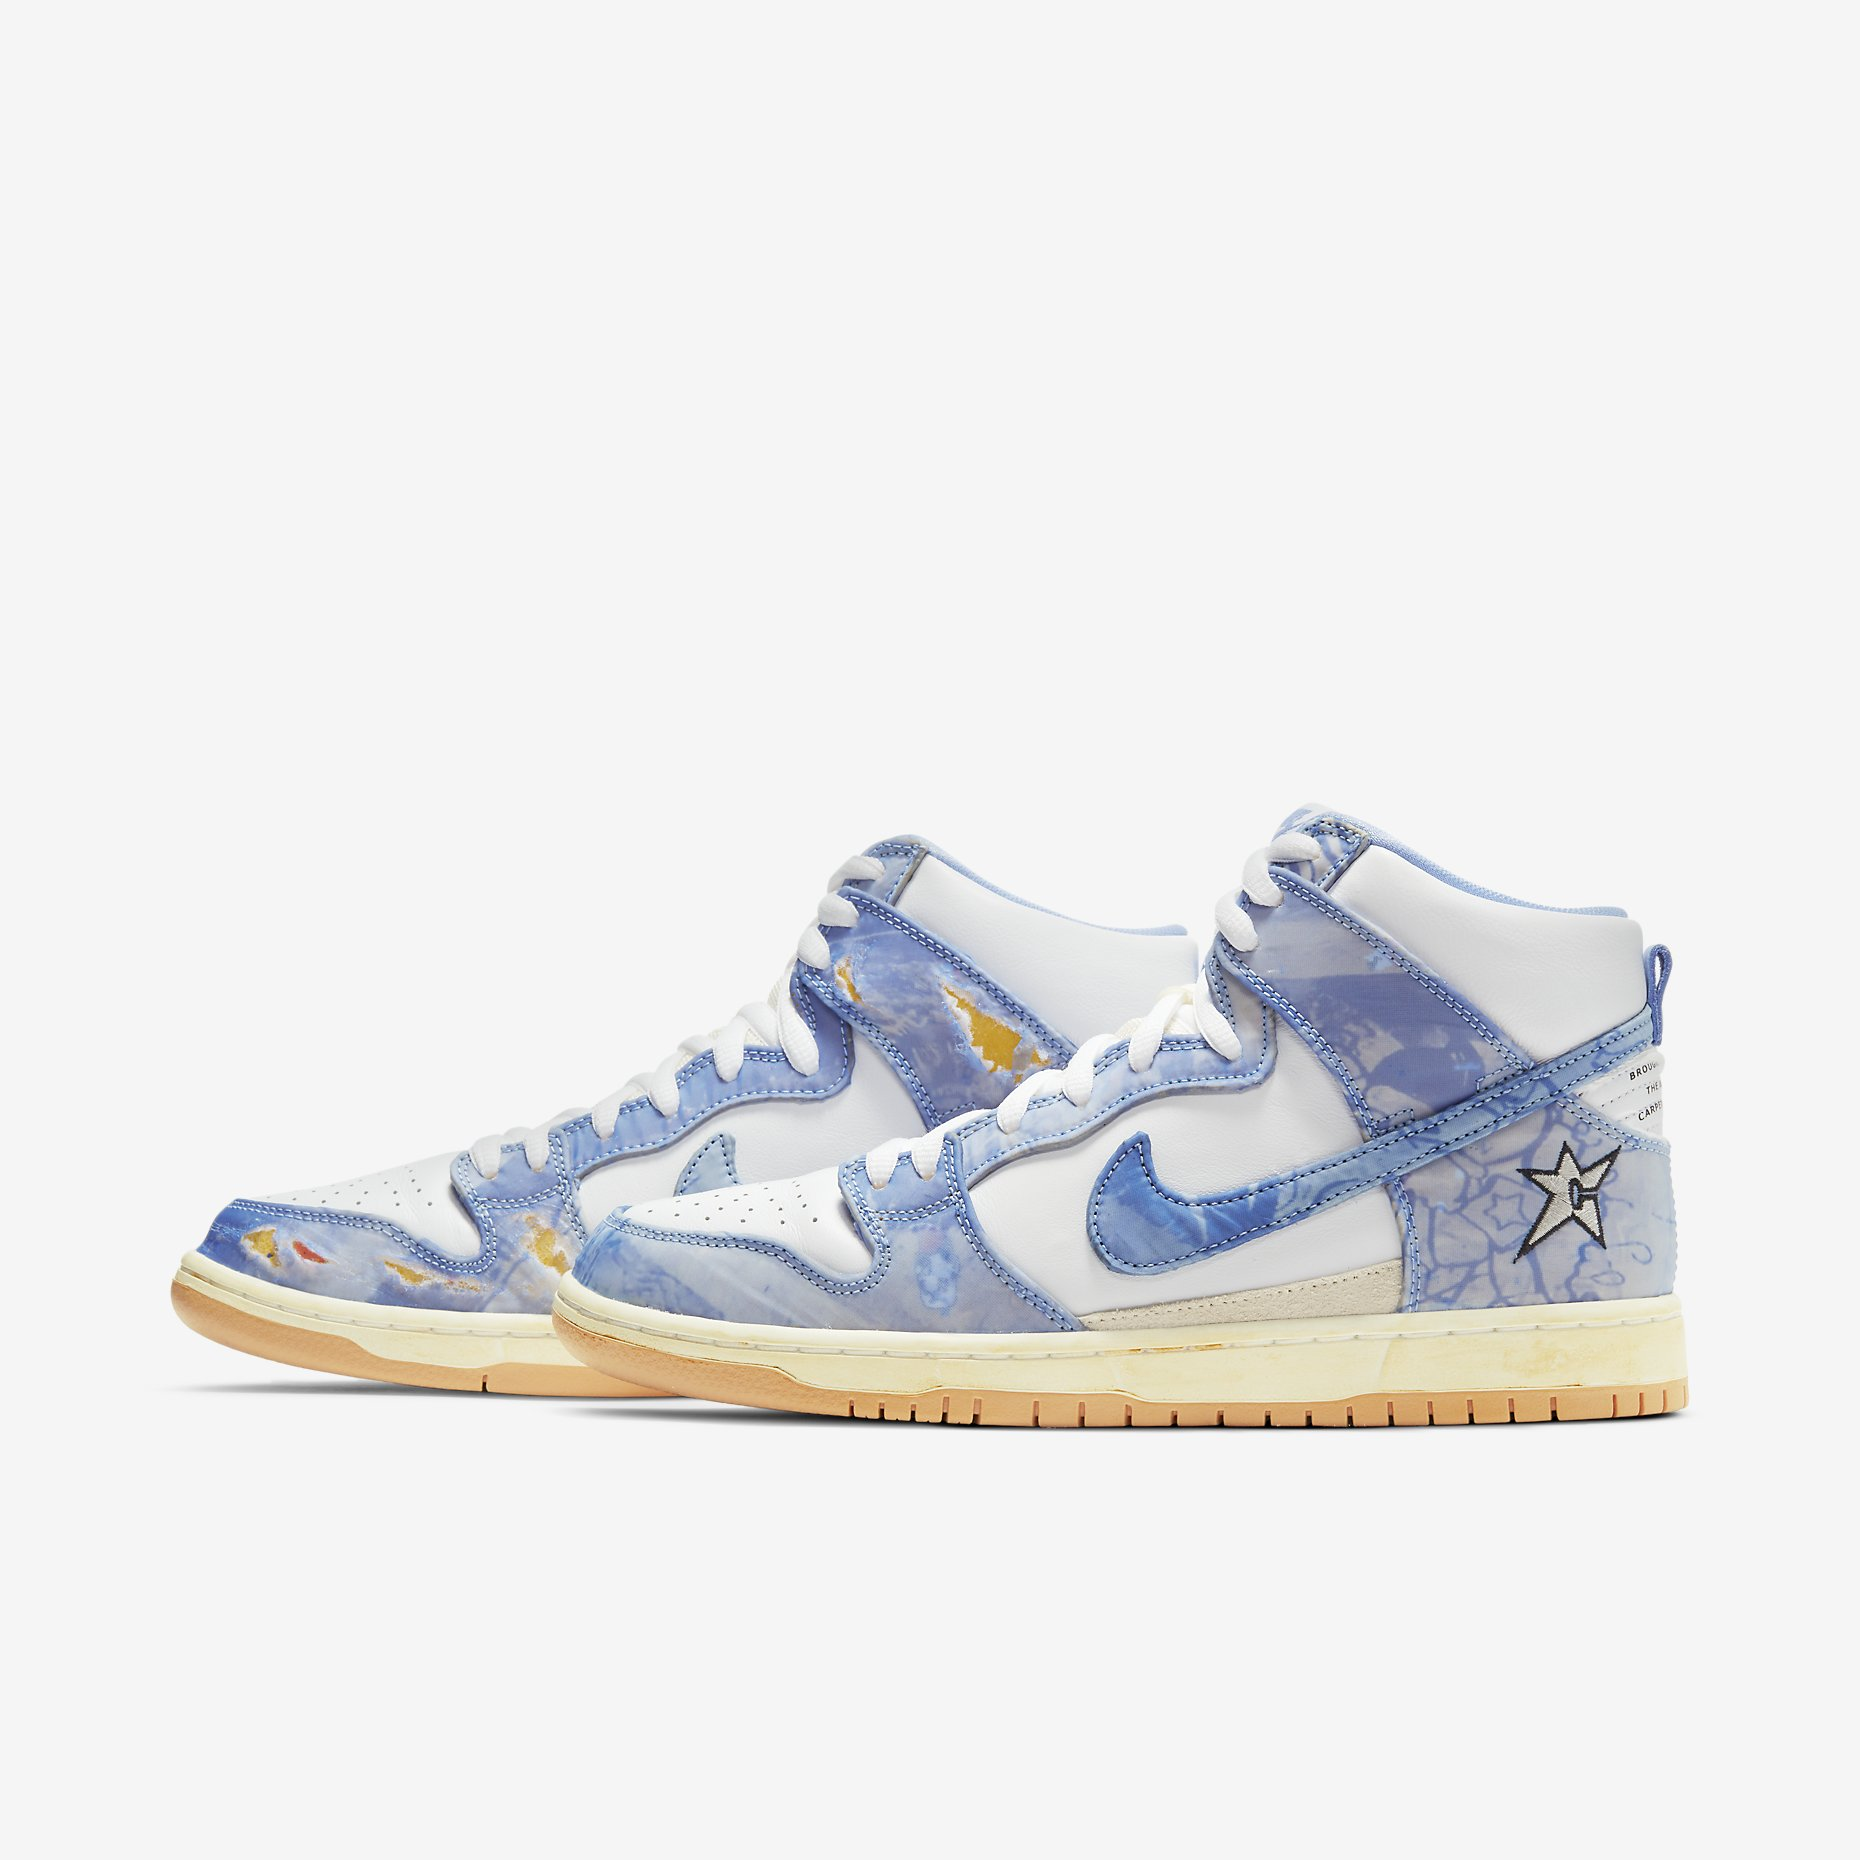 Carpet Company x Nike SB Dunk High 'Royal Pulse'}